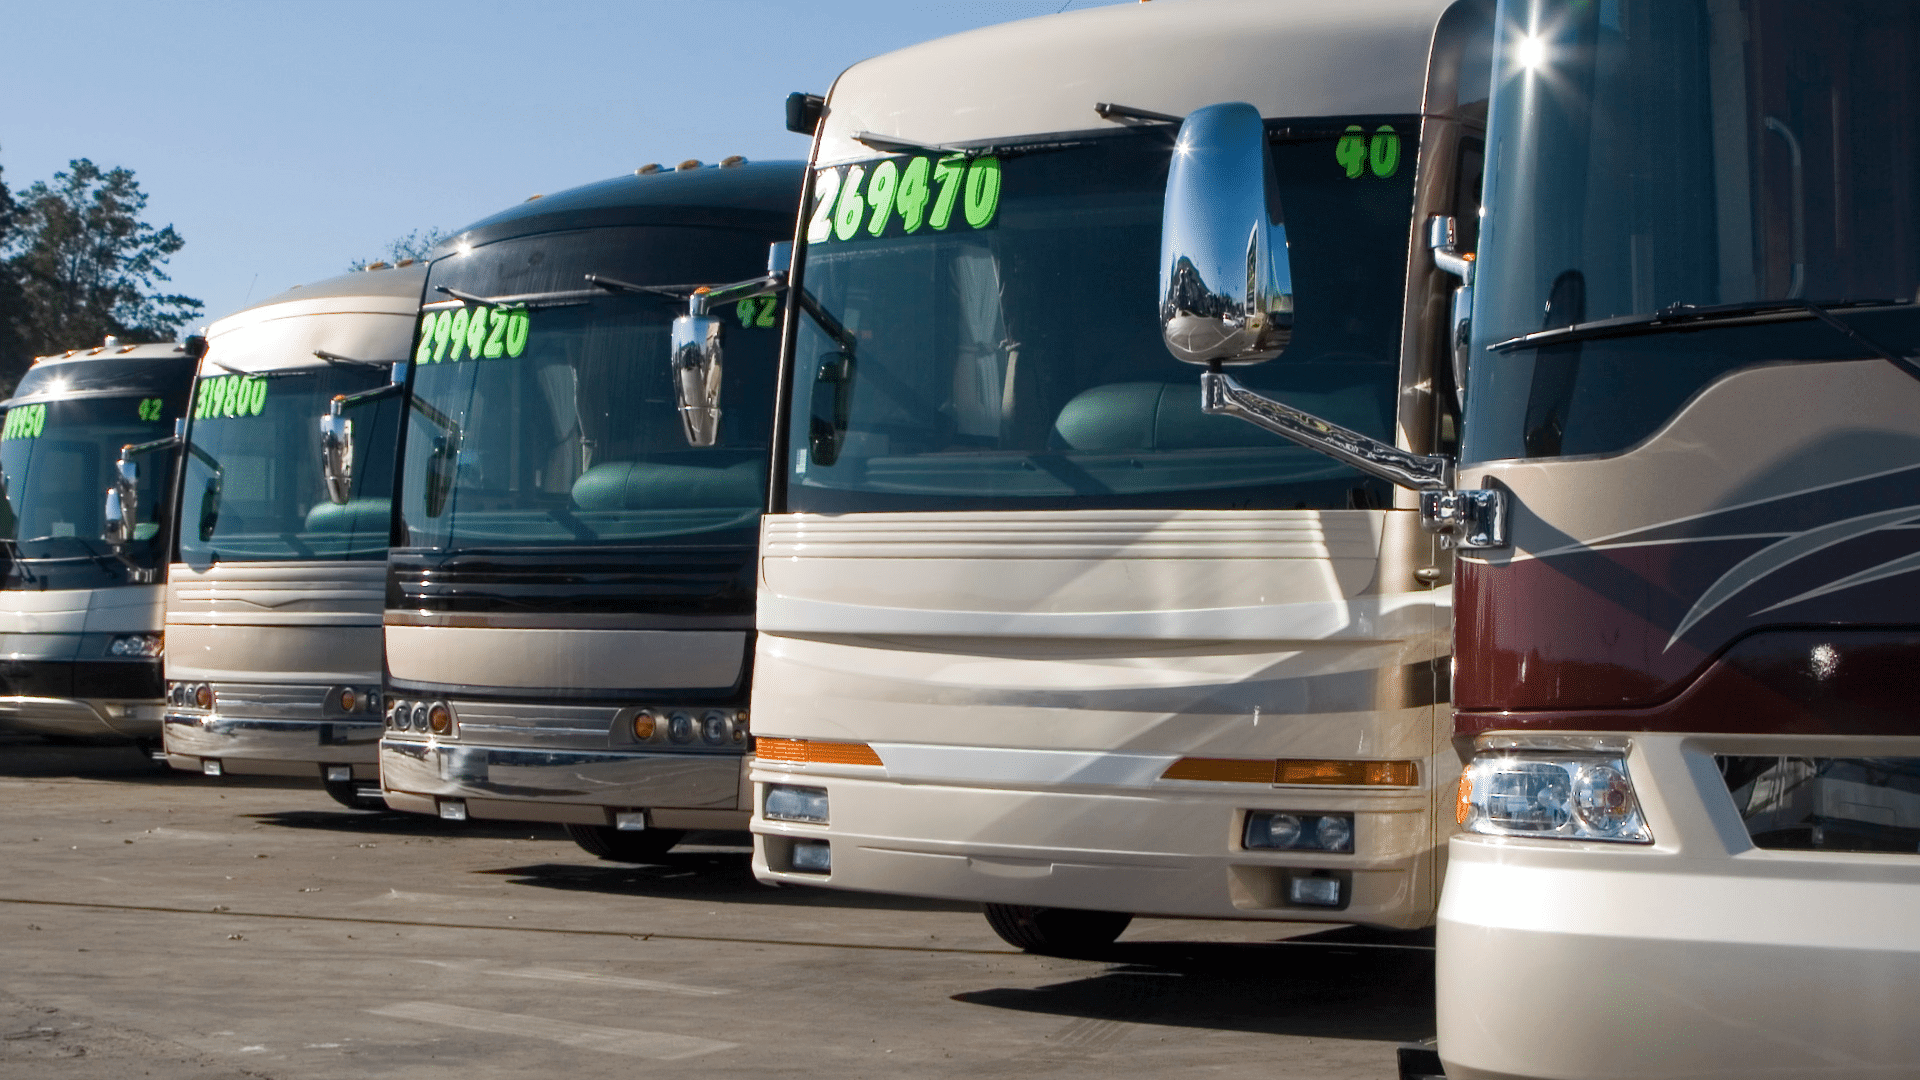 RV prices displayed on window of motorhomes on RV lot